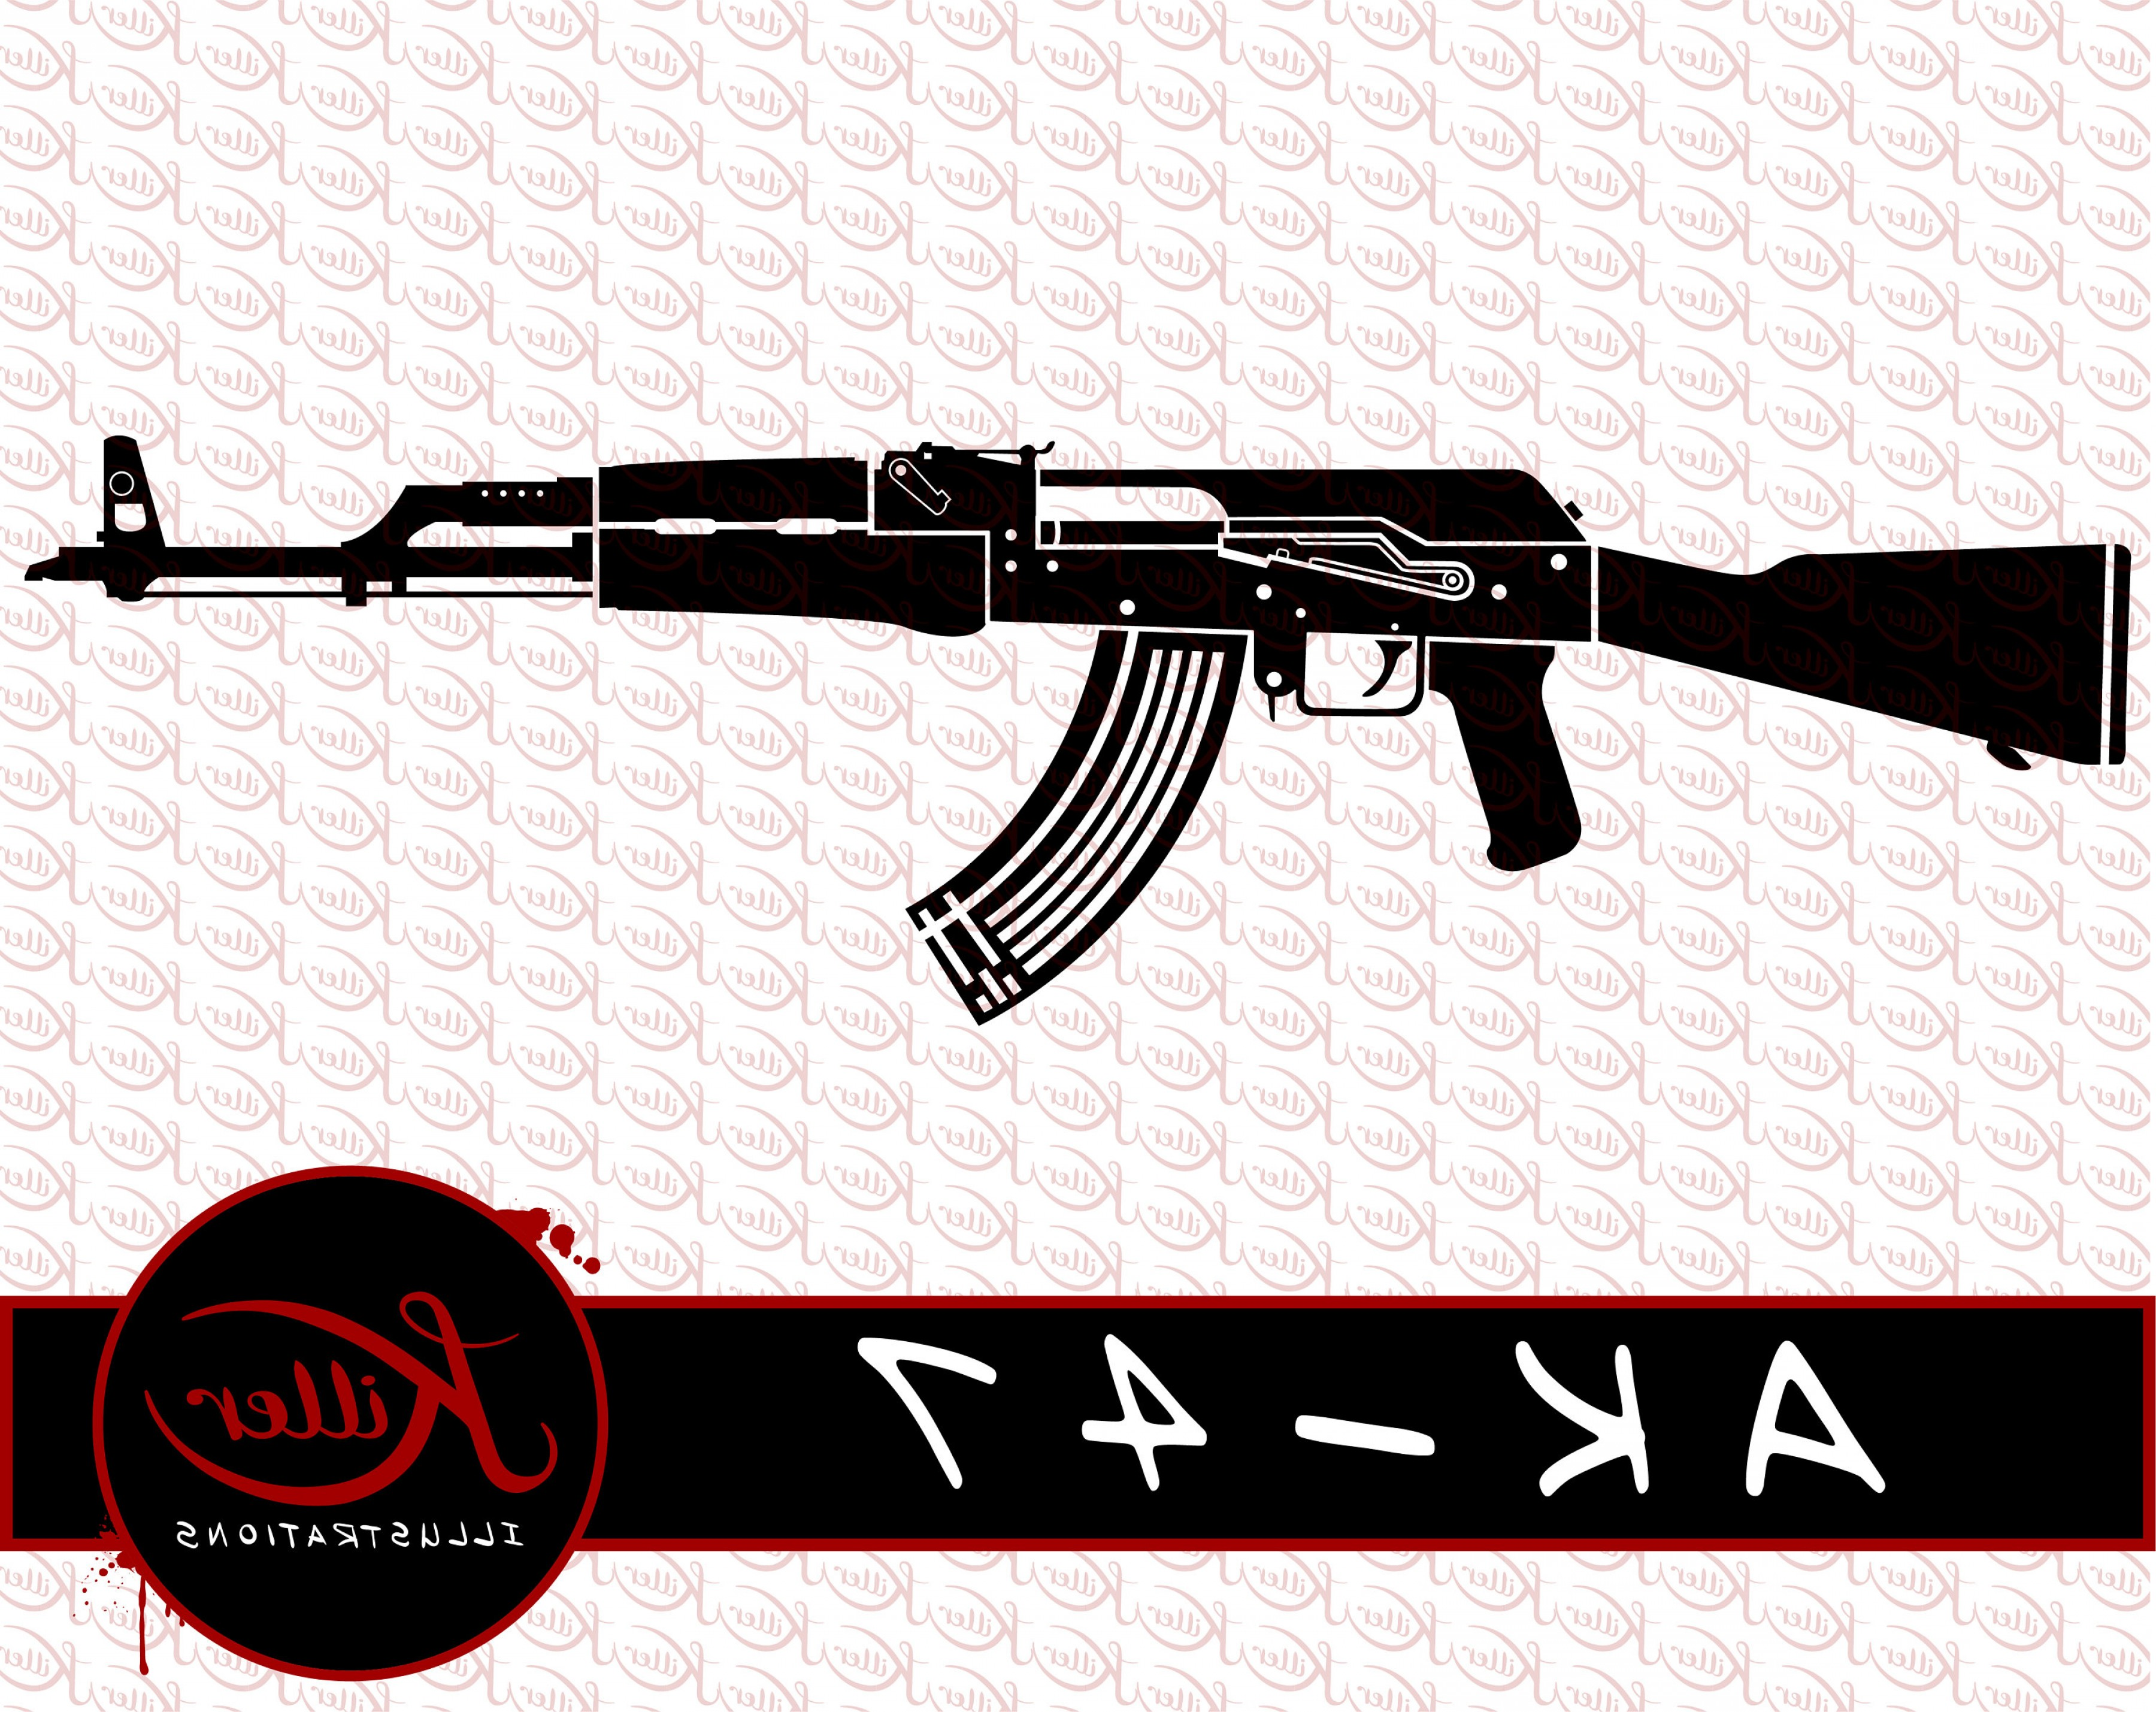 AK-47 Gun Vector: Ak Gun Vector Rifle Clip Art Firearm